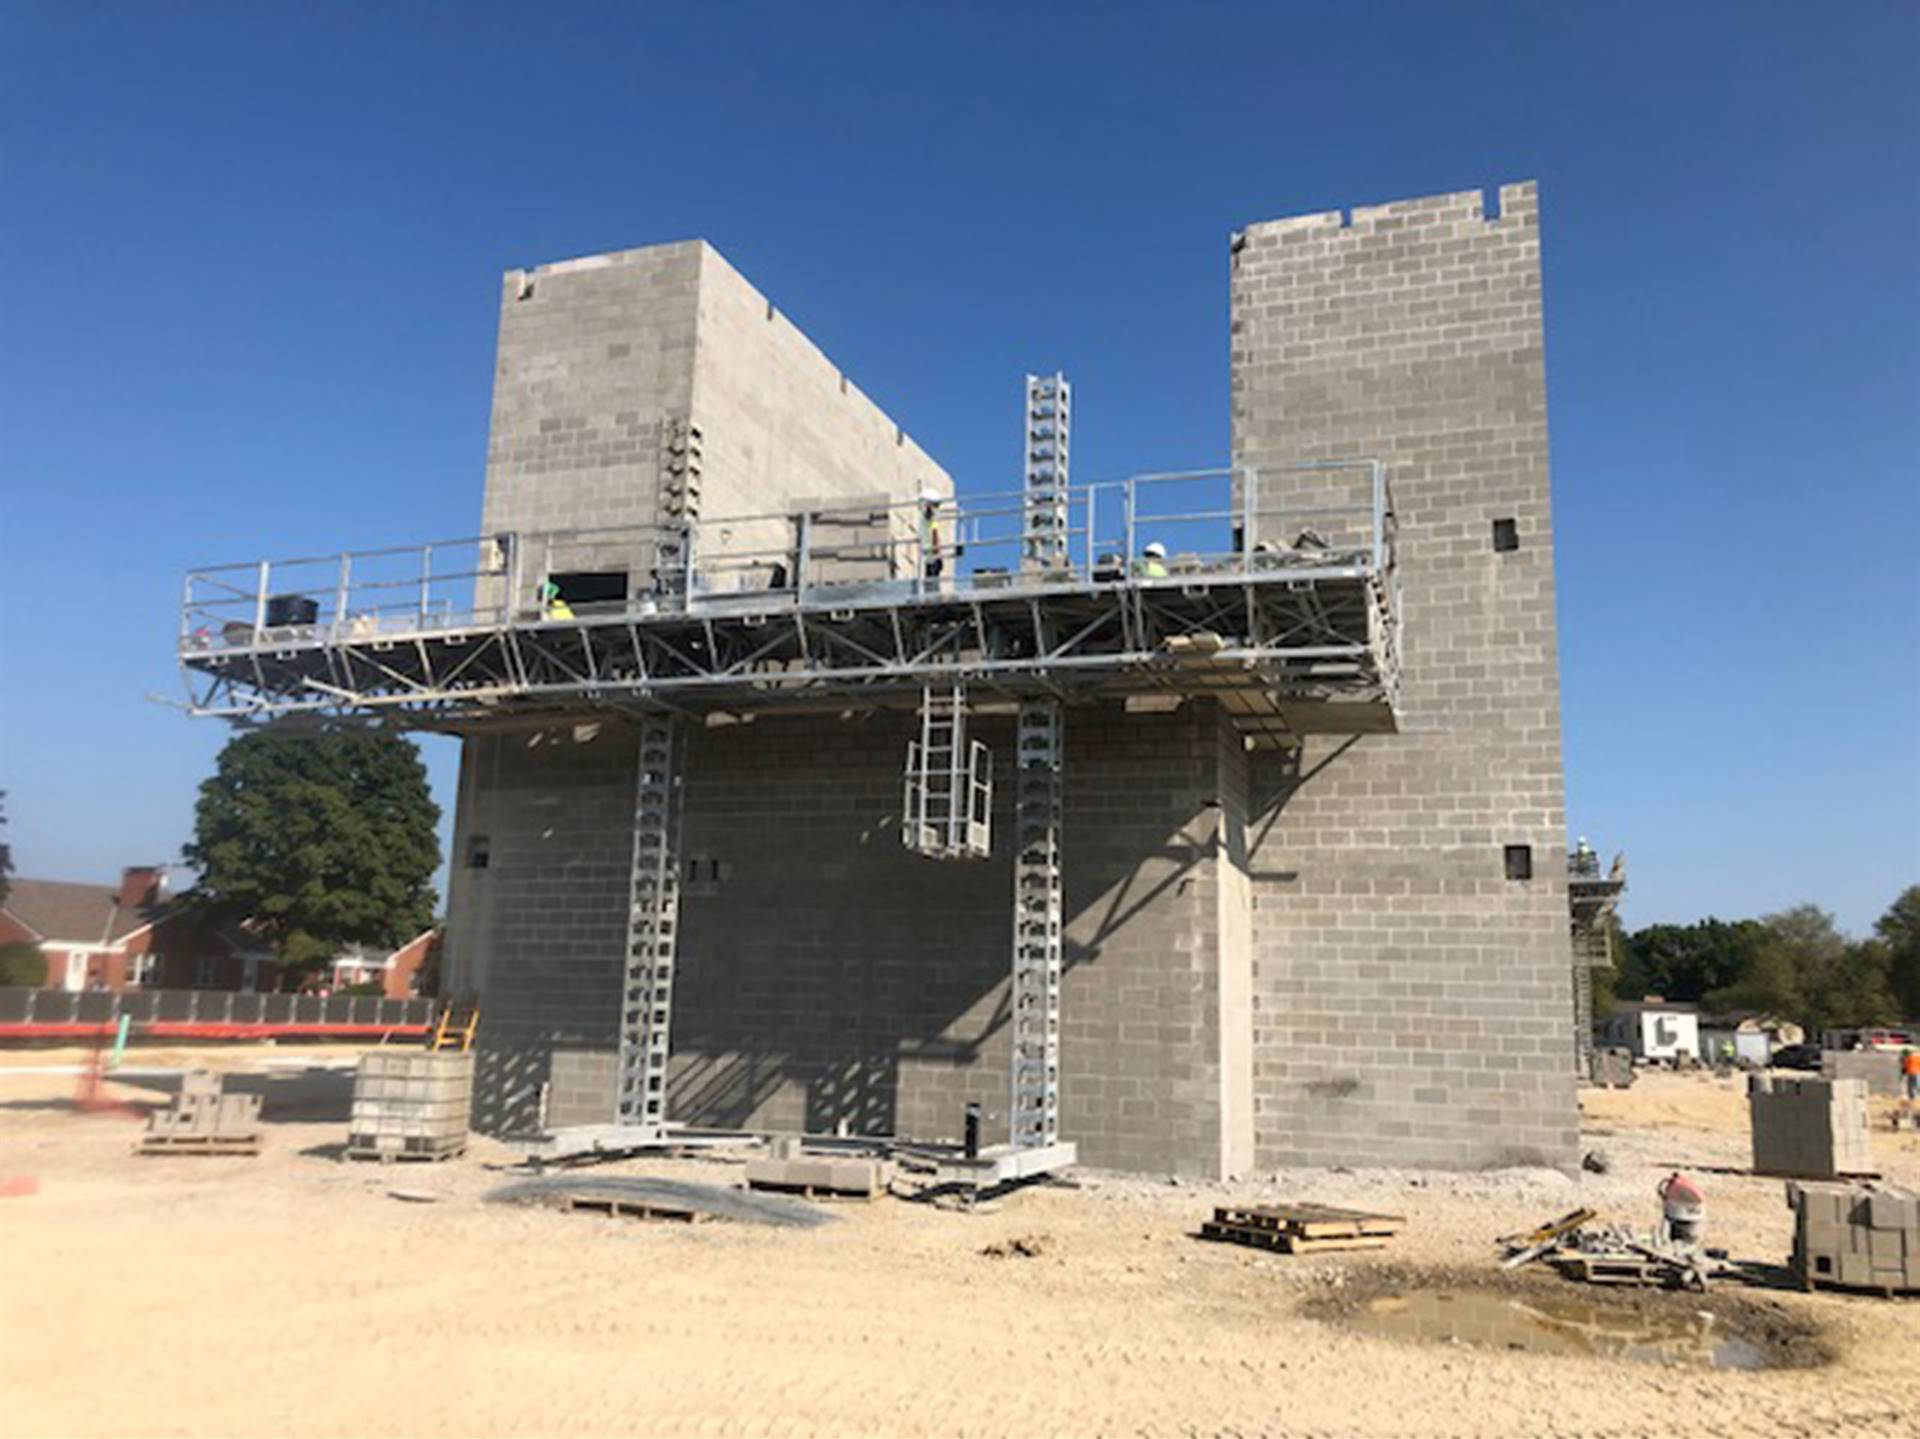 Masonry work on the new high school building